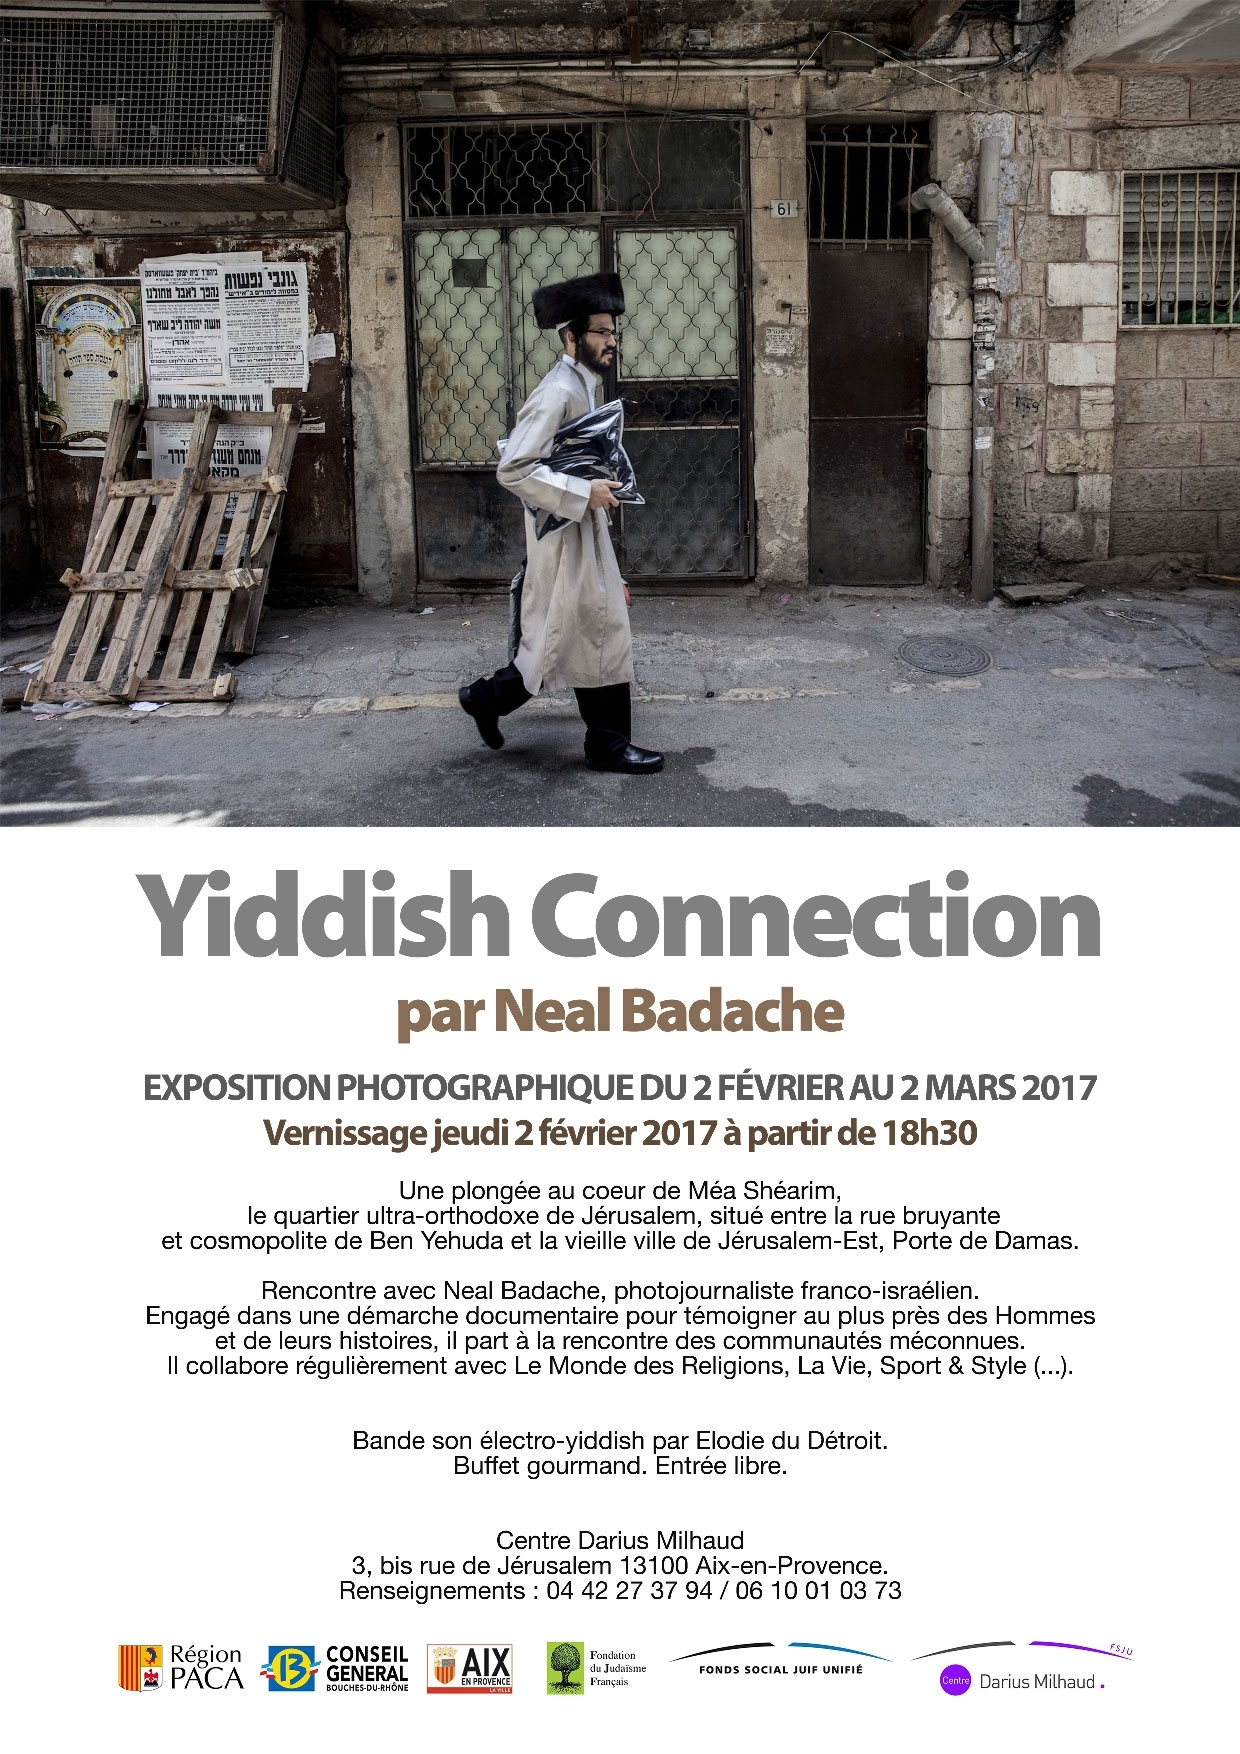 Yiddish Connection - Vernissage